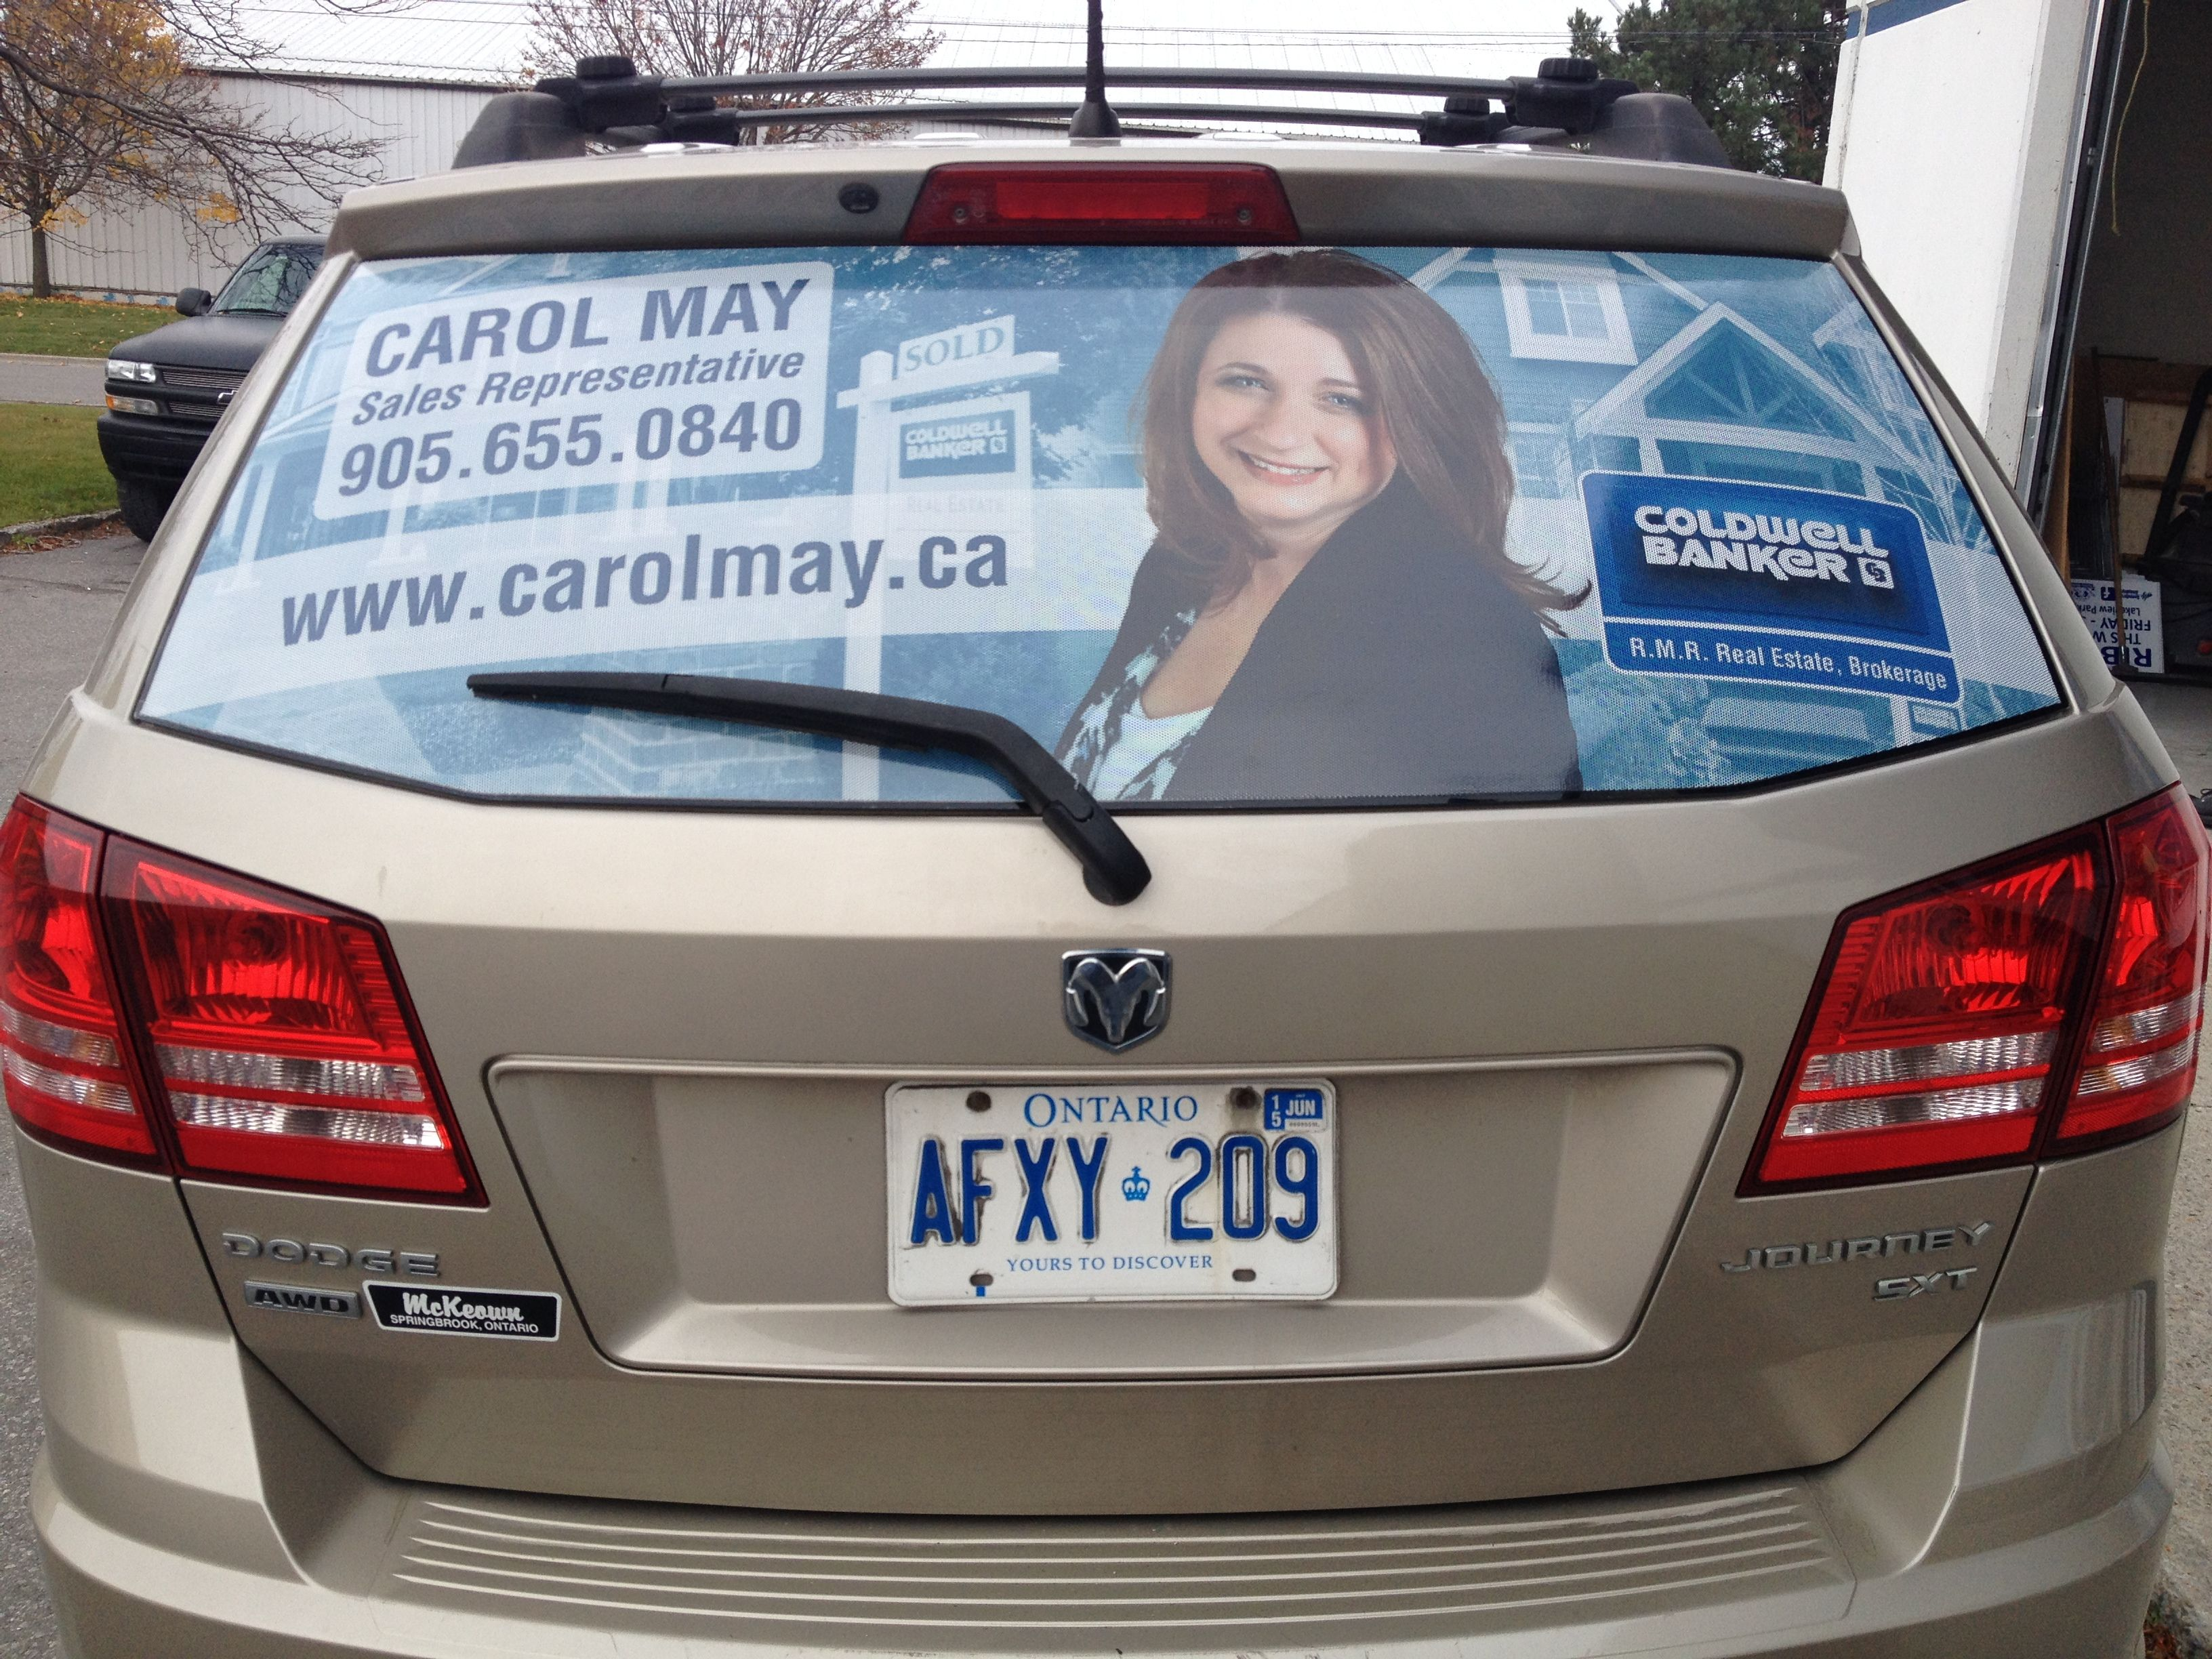 Great new rear window perforated vinyl graphics completed for carol may of coldwell banker r m r real